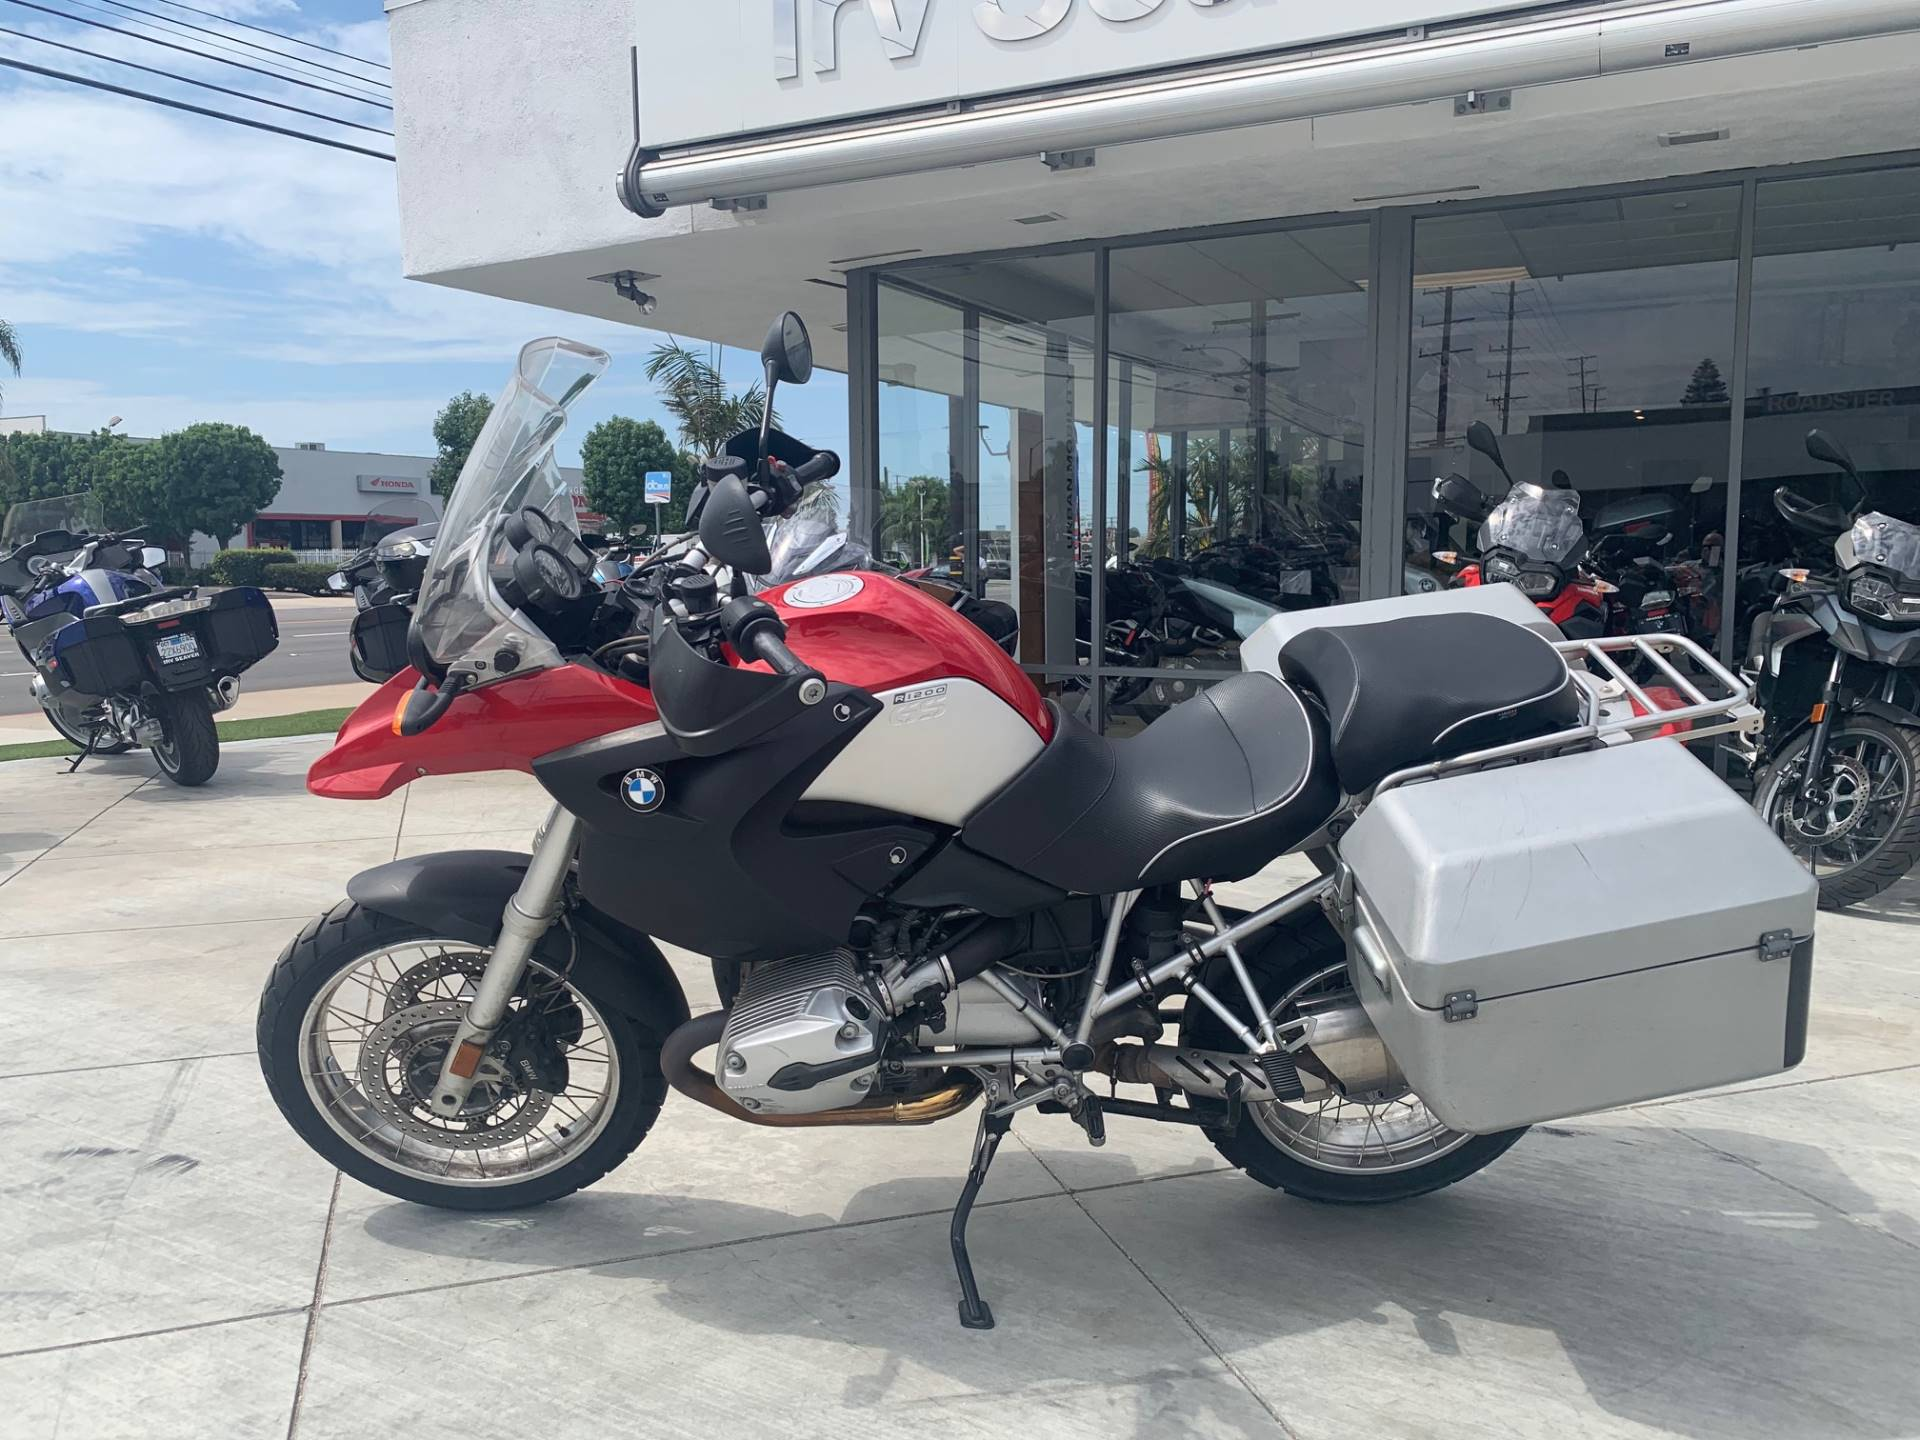 2007 BMW R 1200 GS in Orange, California - Photo 1